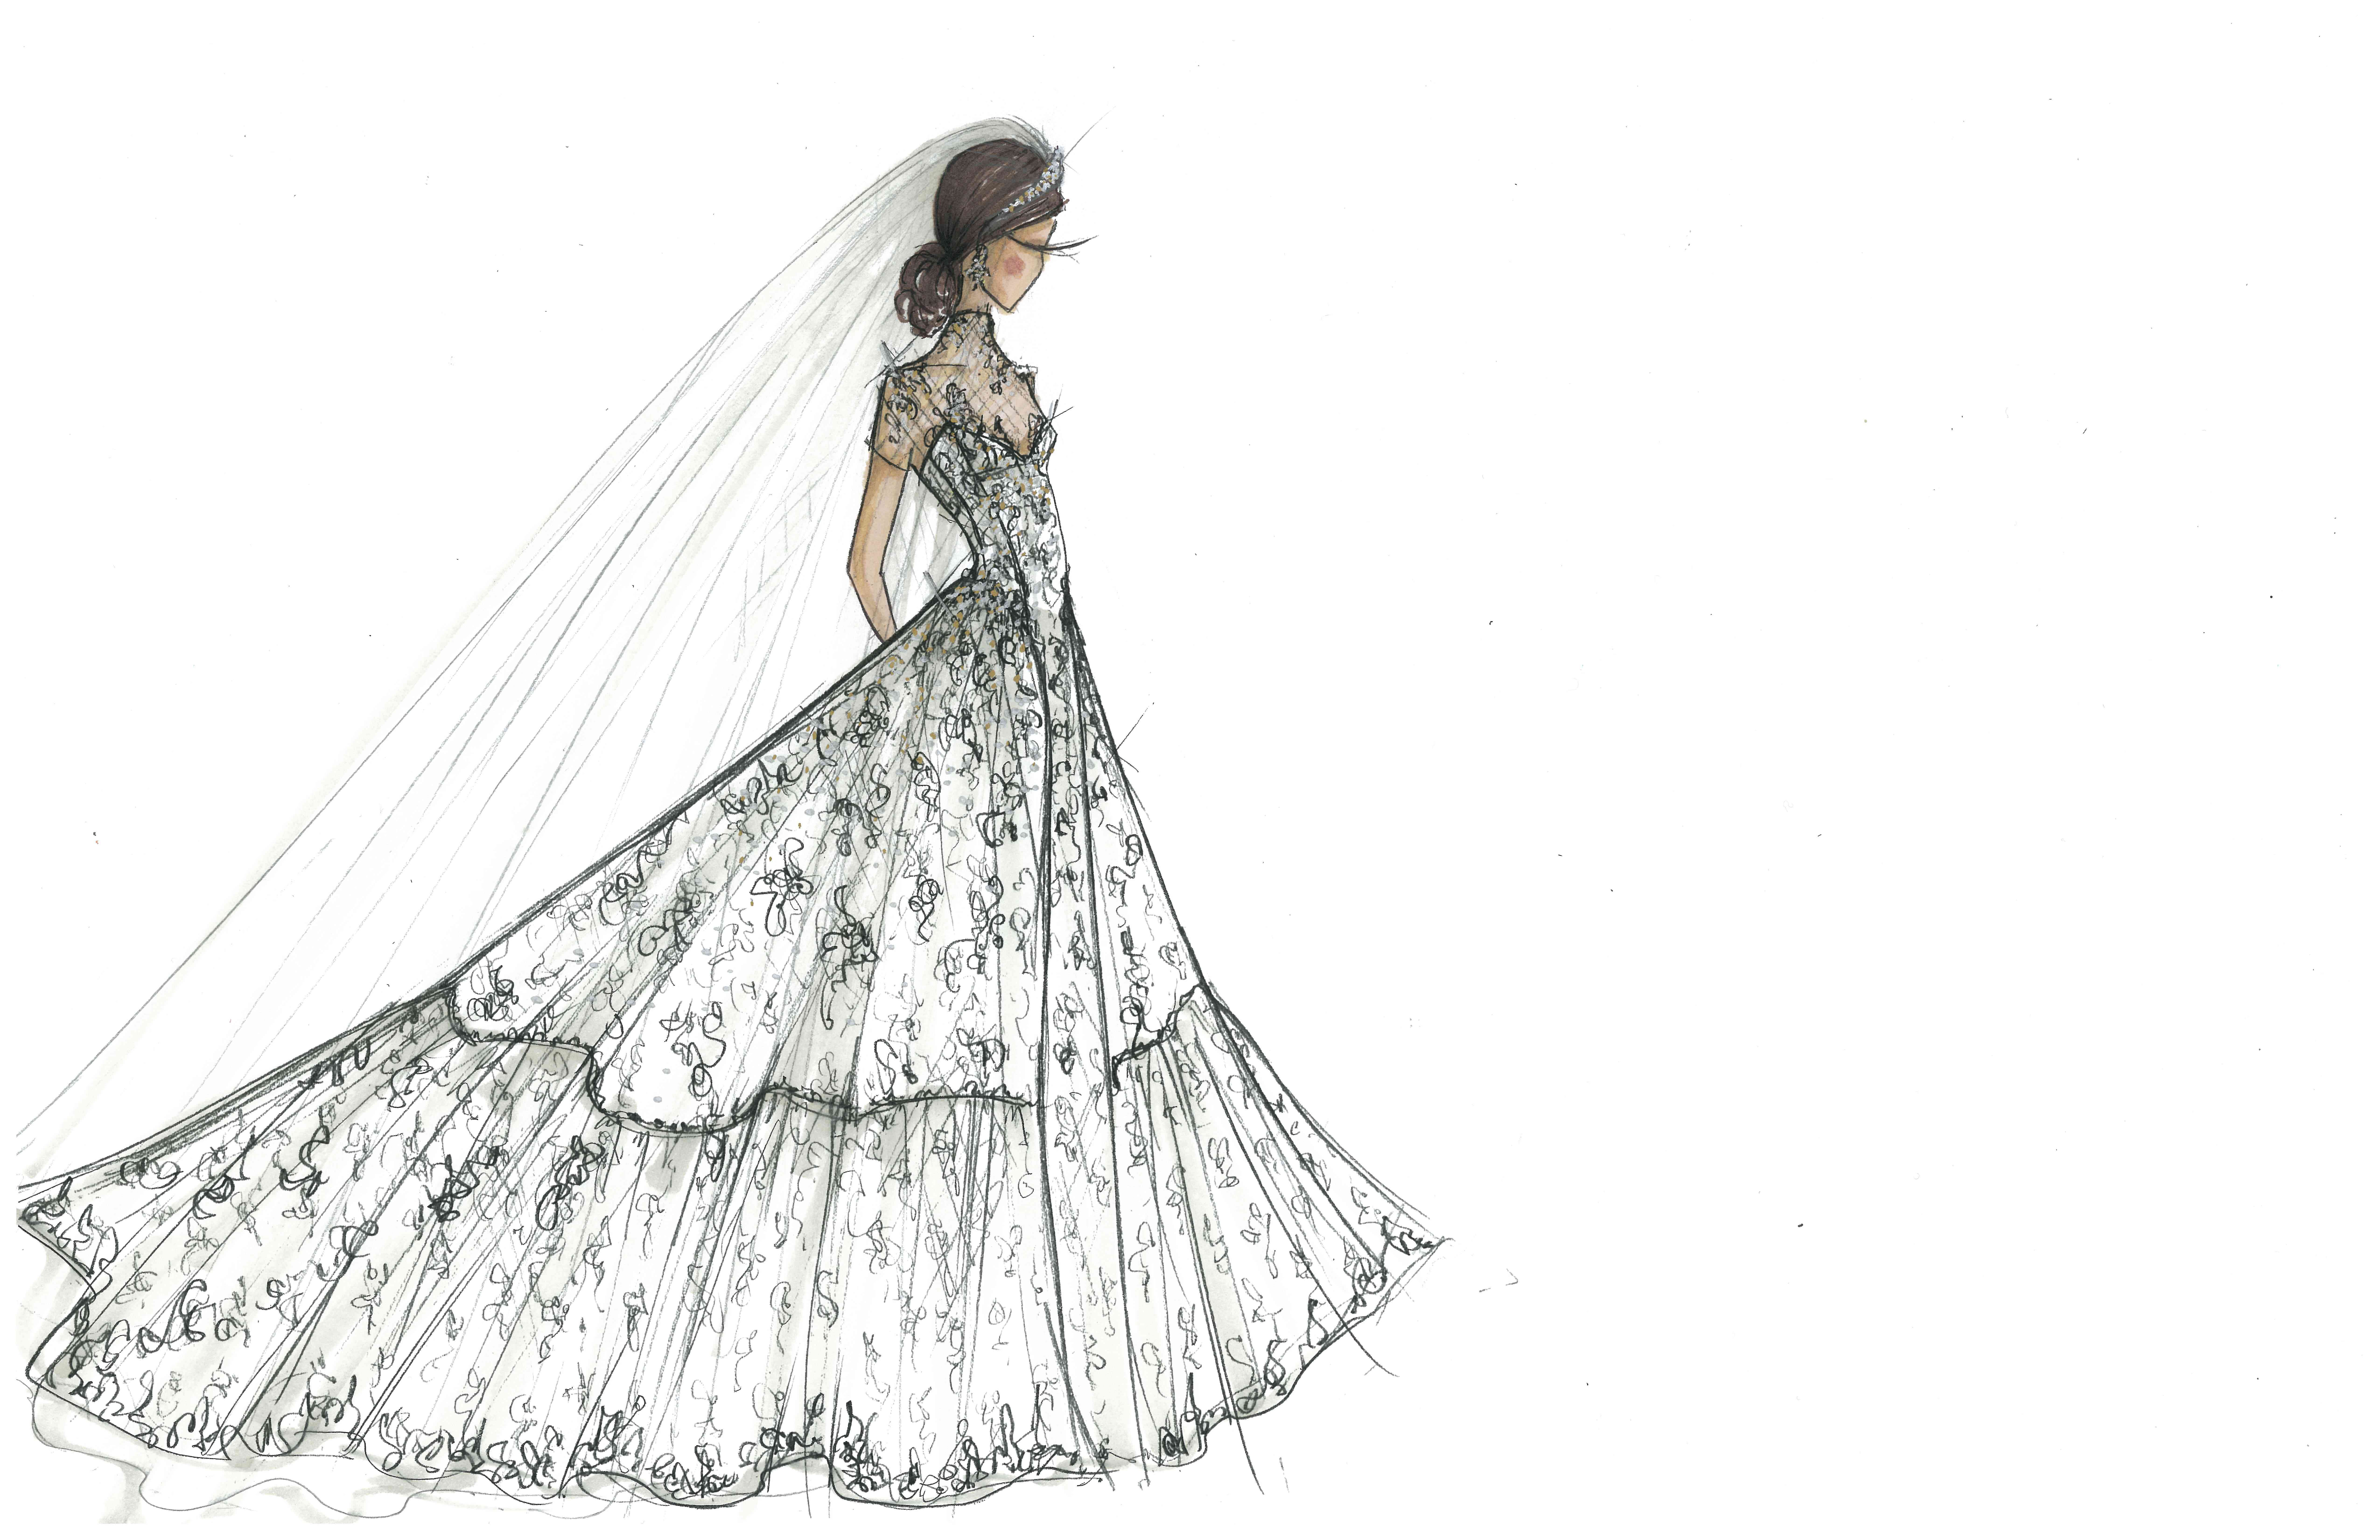 Meghan Markle S Wedding Dress Will Look Like This According To These Bridal Designers